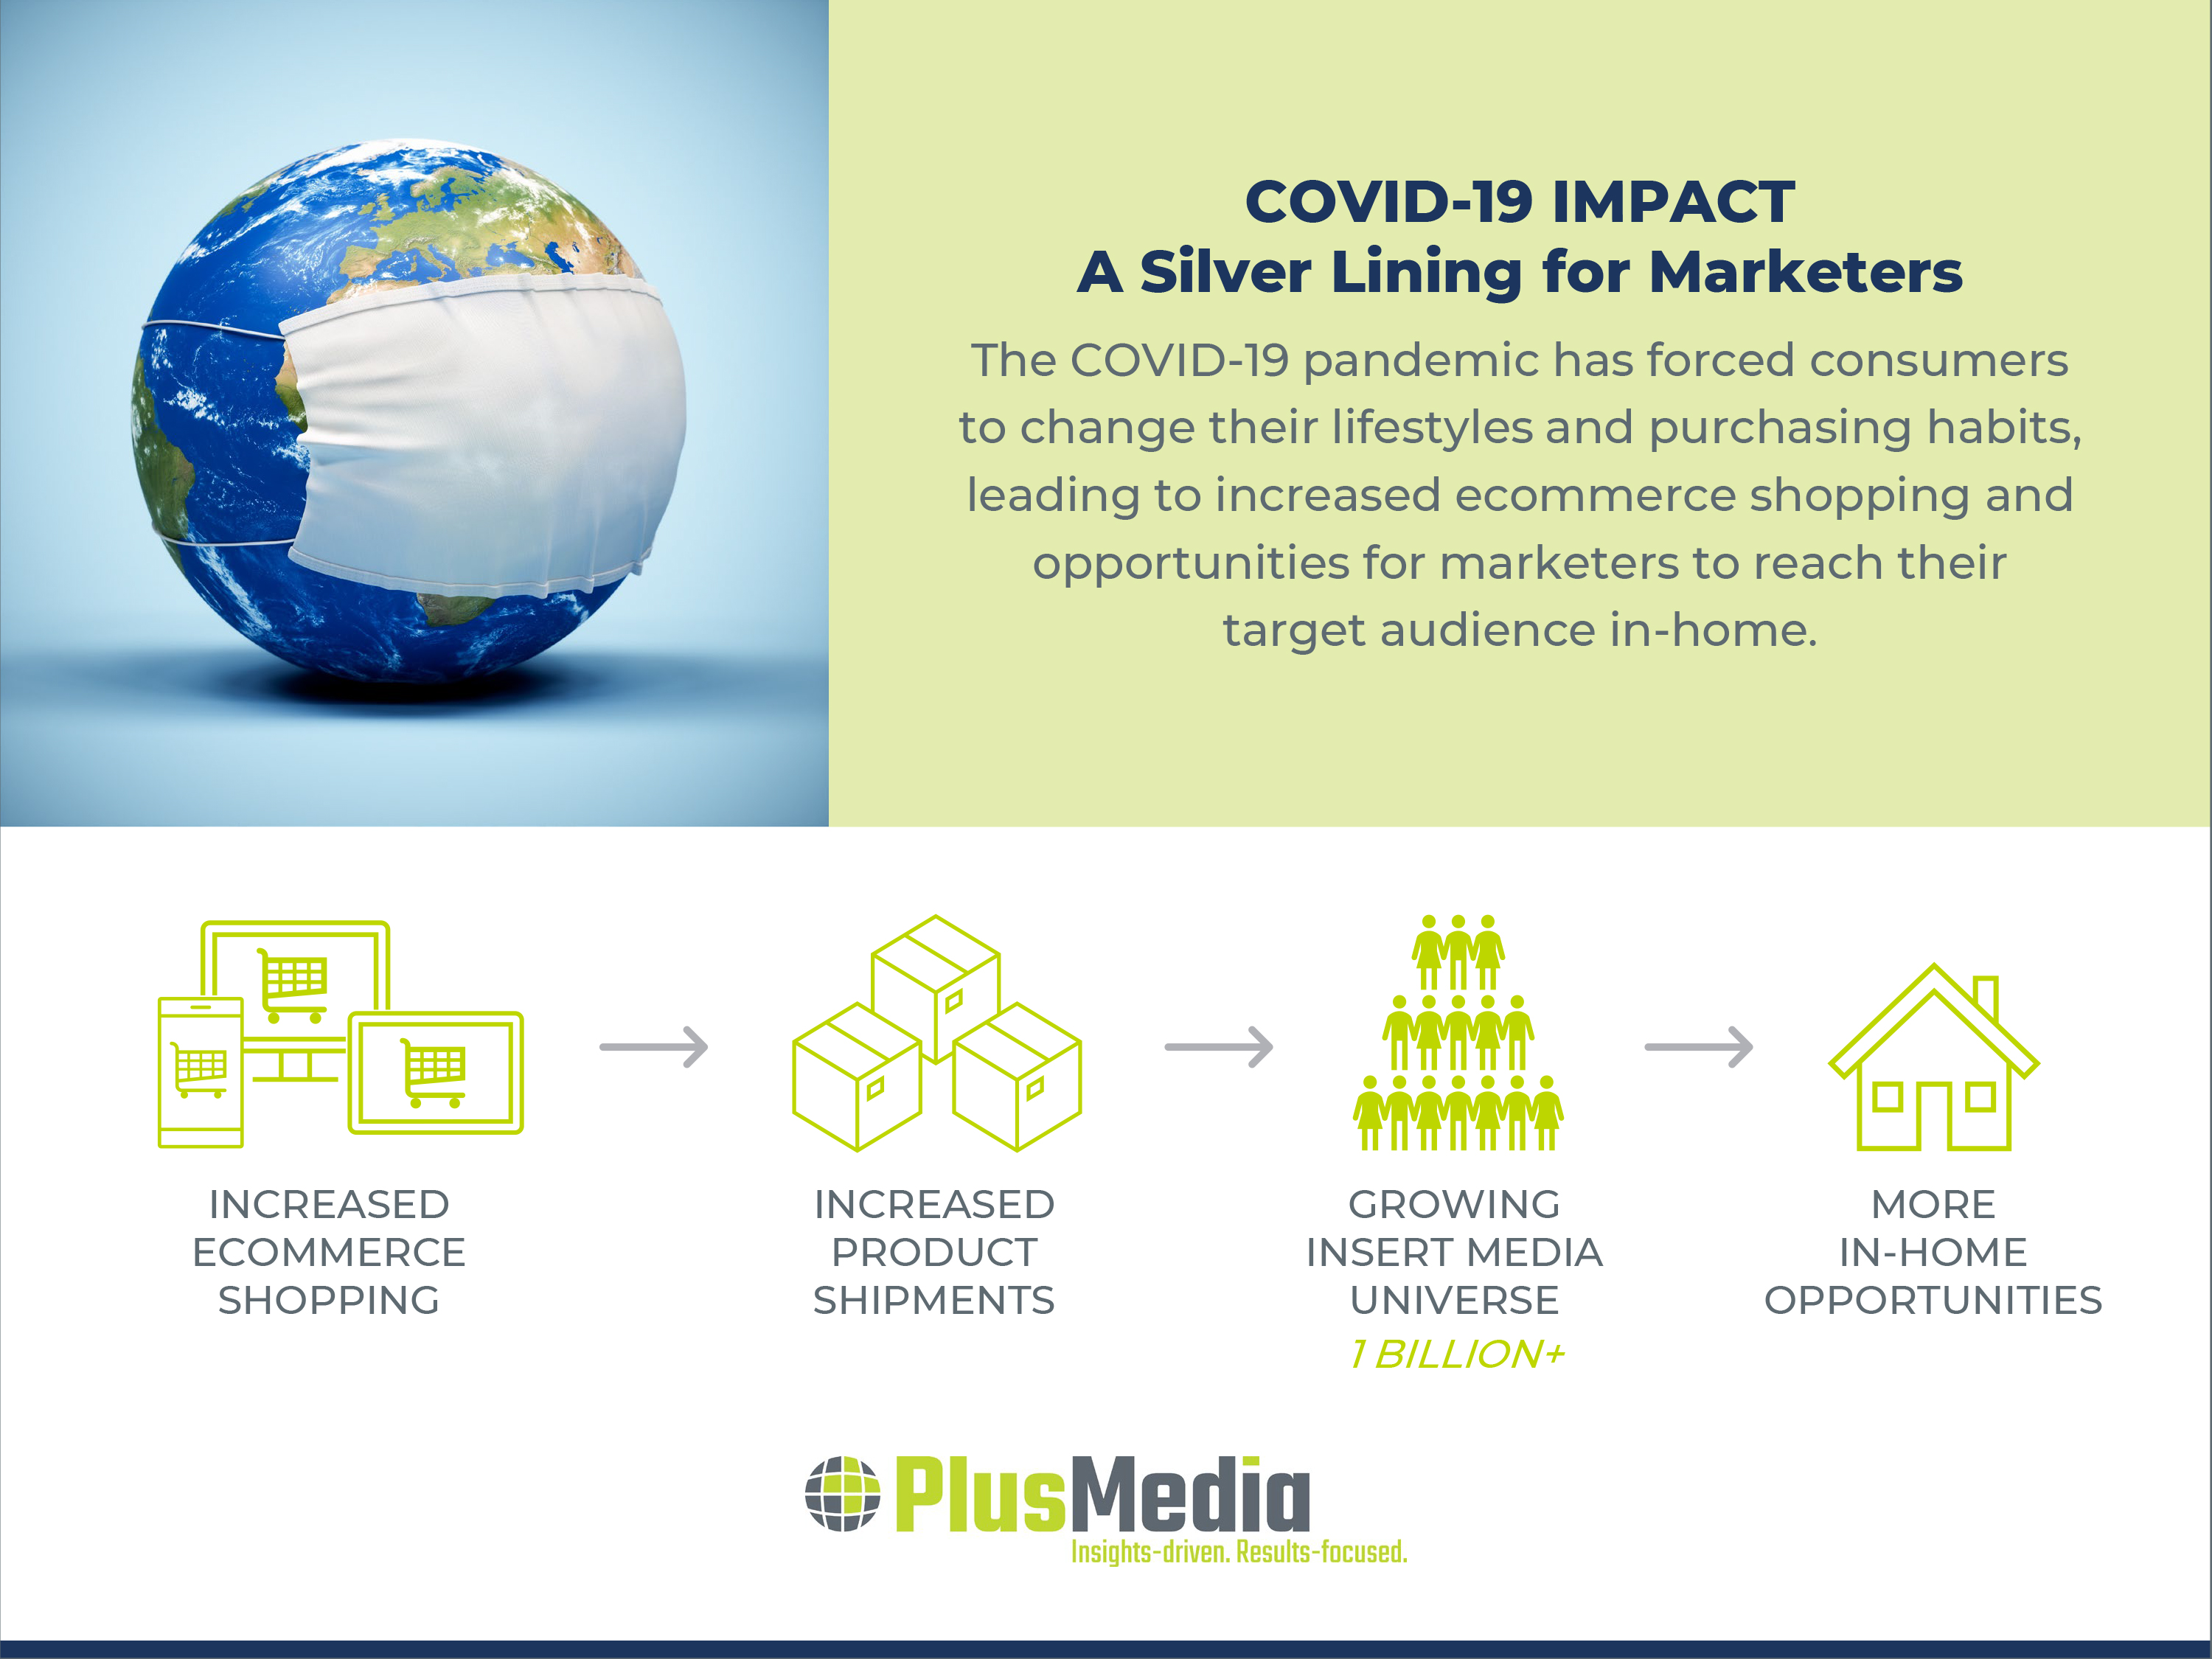 COVID-19 Impact: A Silver Lining for Marketers